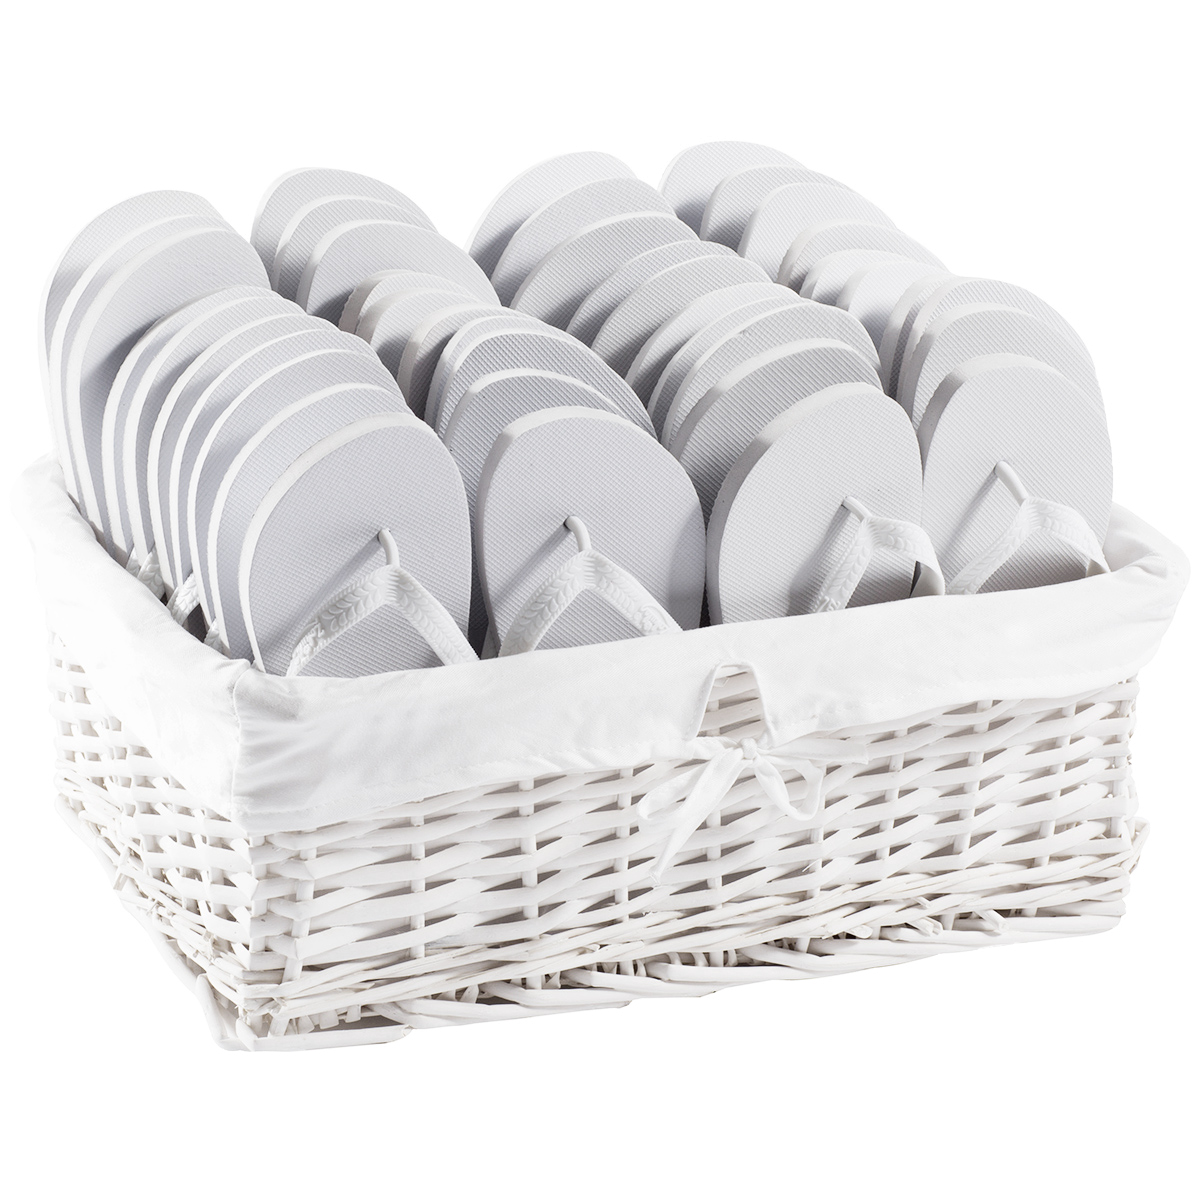 1e3223df8 Zohula White Originals Party Pack - 20 Pairs - one of our most popular party  packs